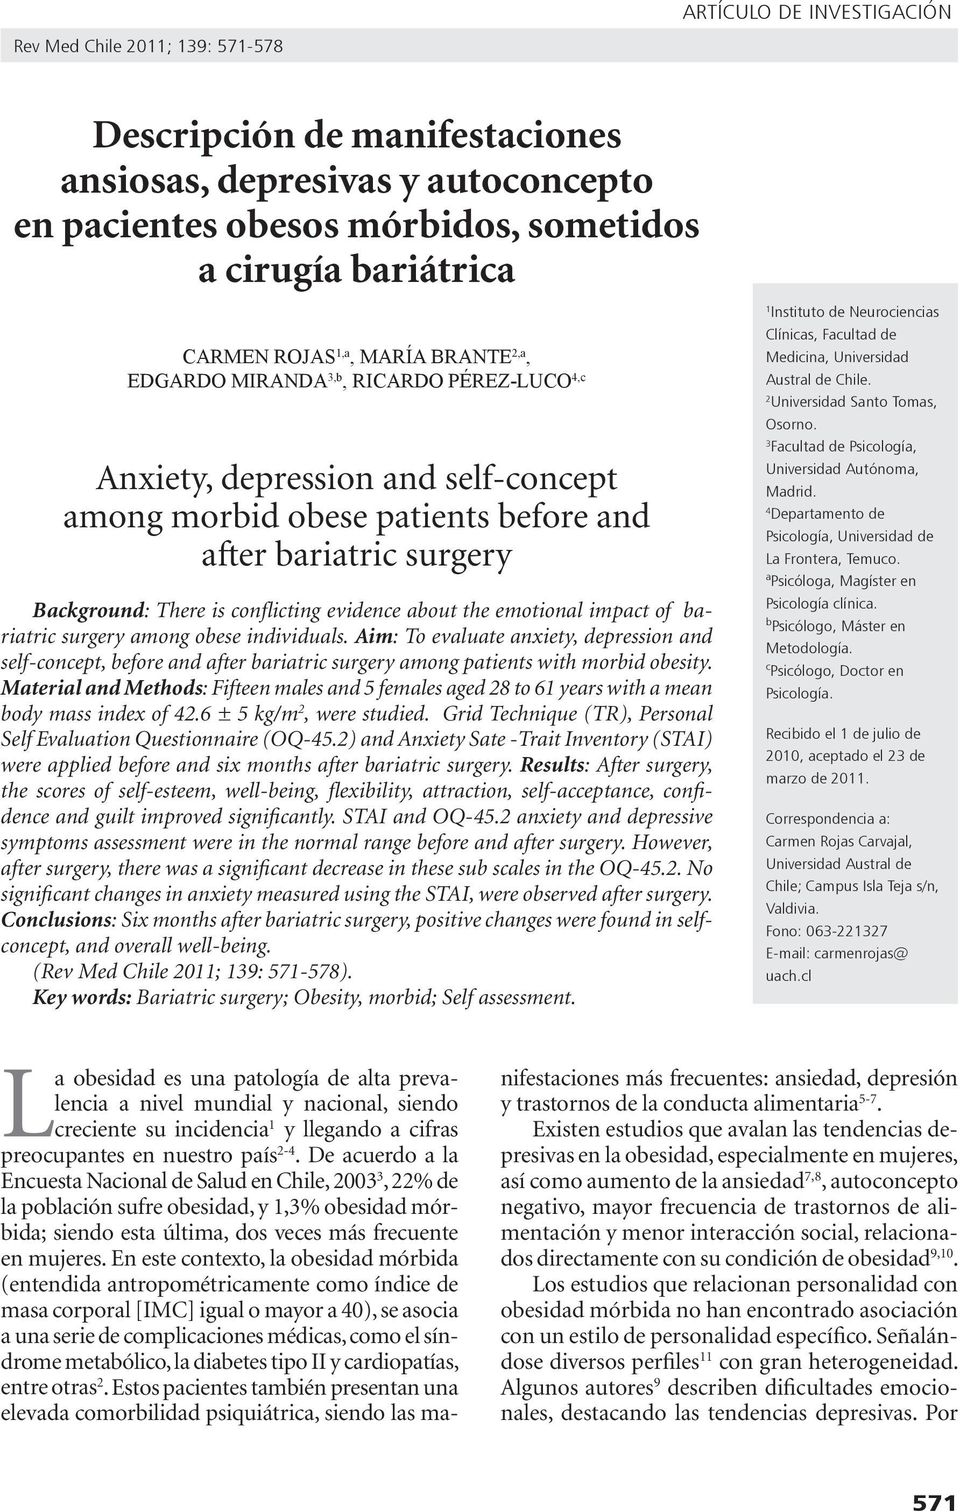 emotional impact of bariatric surgery among obese individuals. Aim: To evaluate anxiety, depression and self-concept, before and after bariatric surgery among patients with morbid obesity.